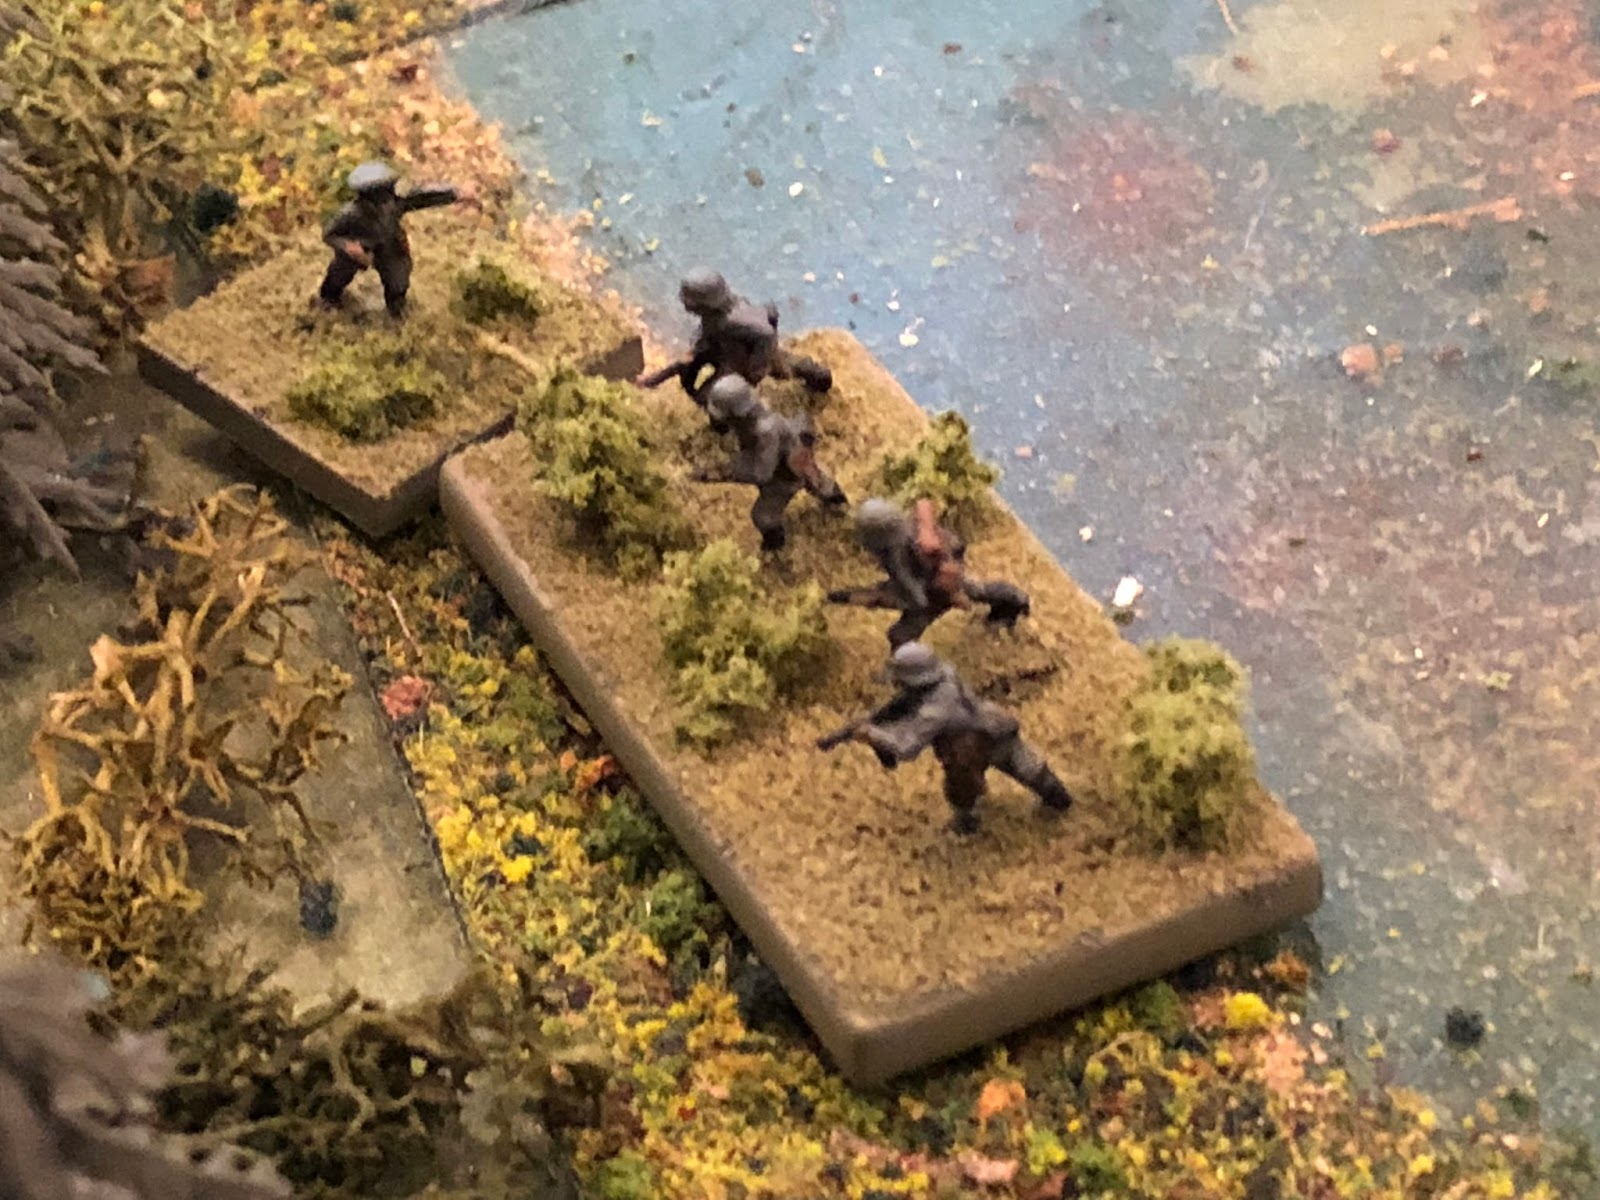 The inspiring German NCO rallies his subordinates back into the fight!